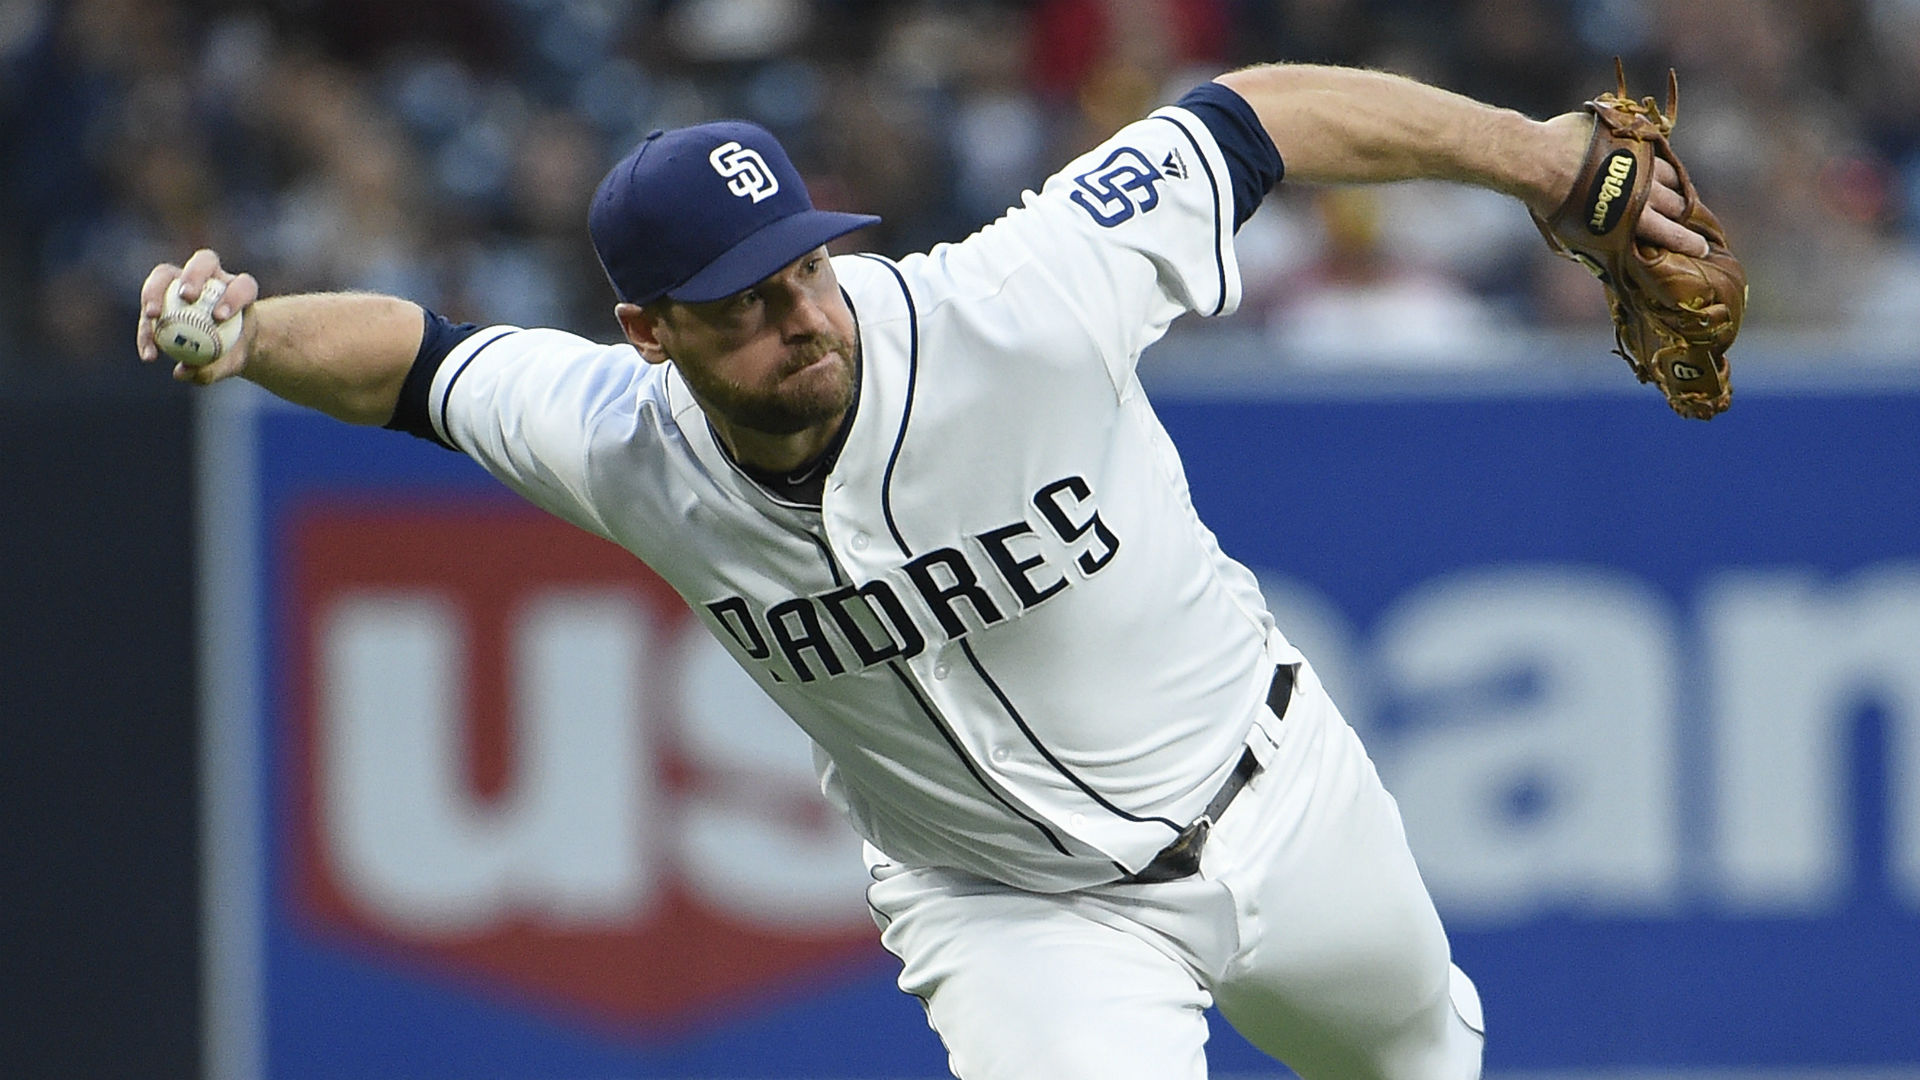 Padres designate struggling Chase Headley for assignment